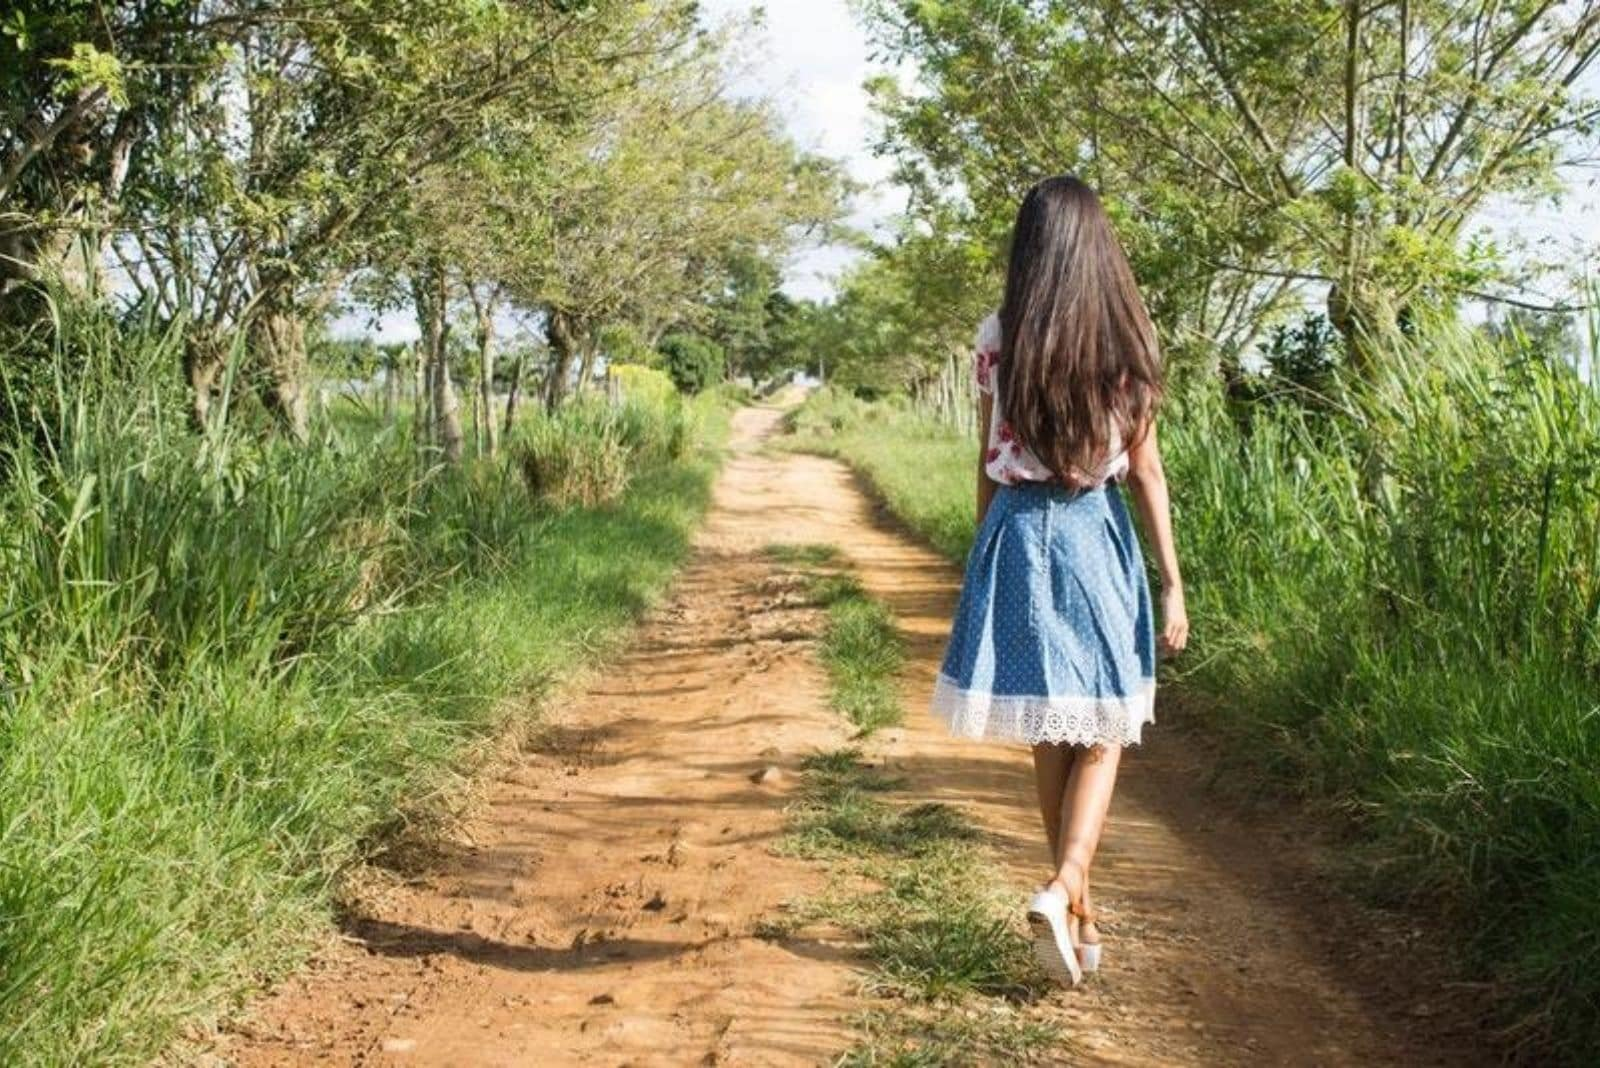 a woman with long black hair sets her back turned